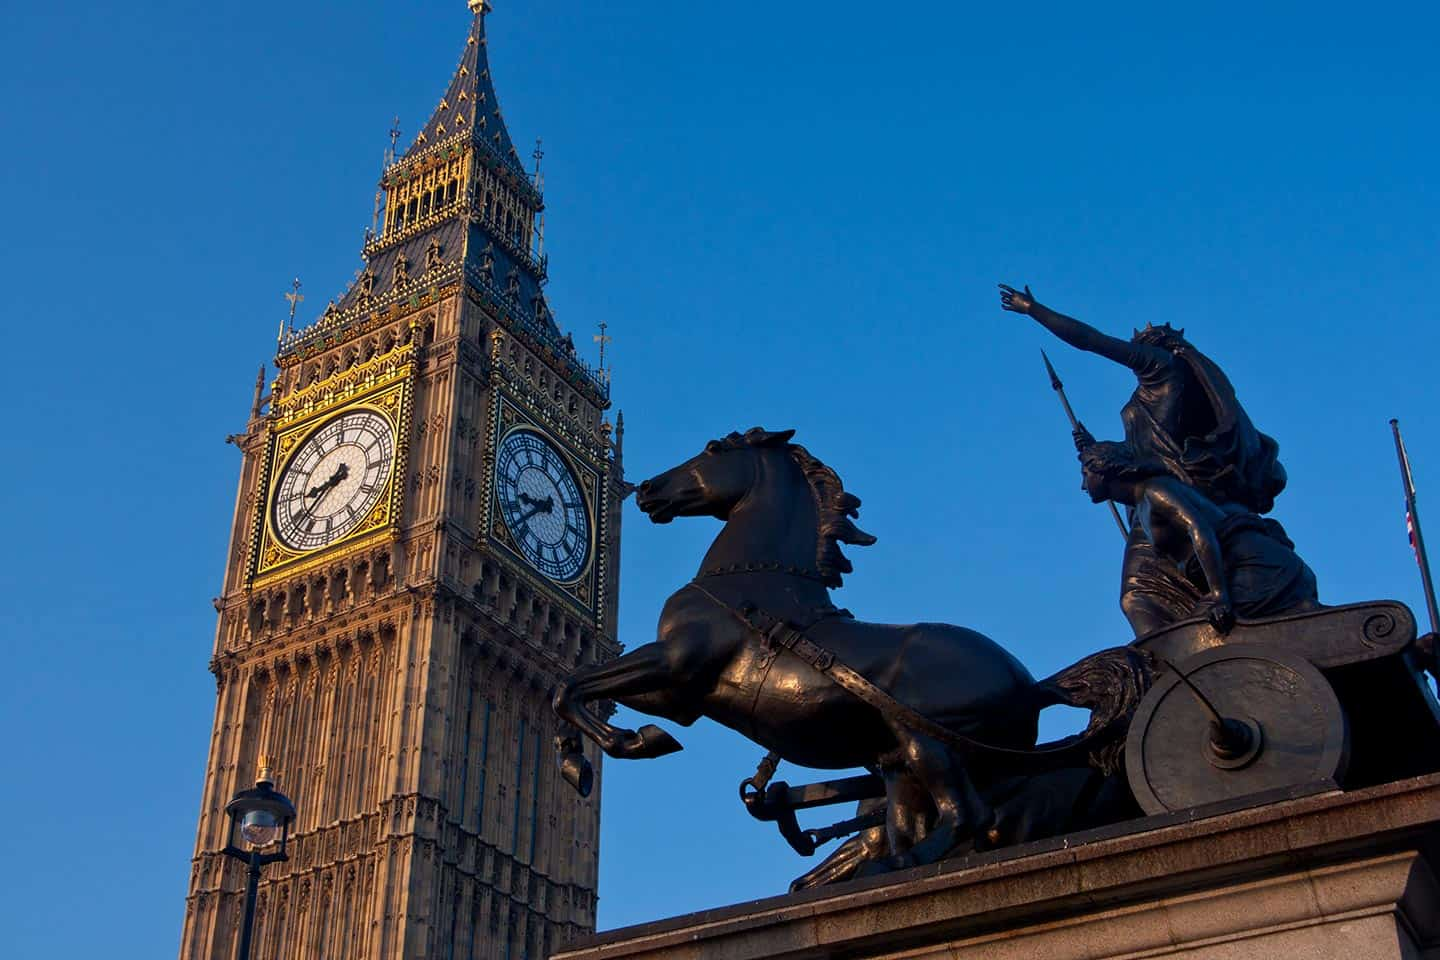 Sightseeing London Image of Big Ben clock tower and statue of Queen Boadicea